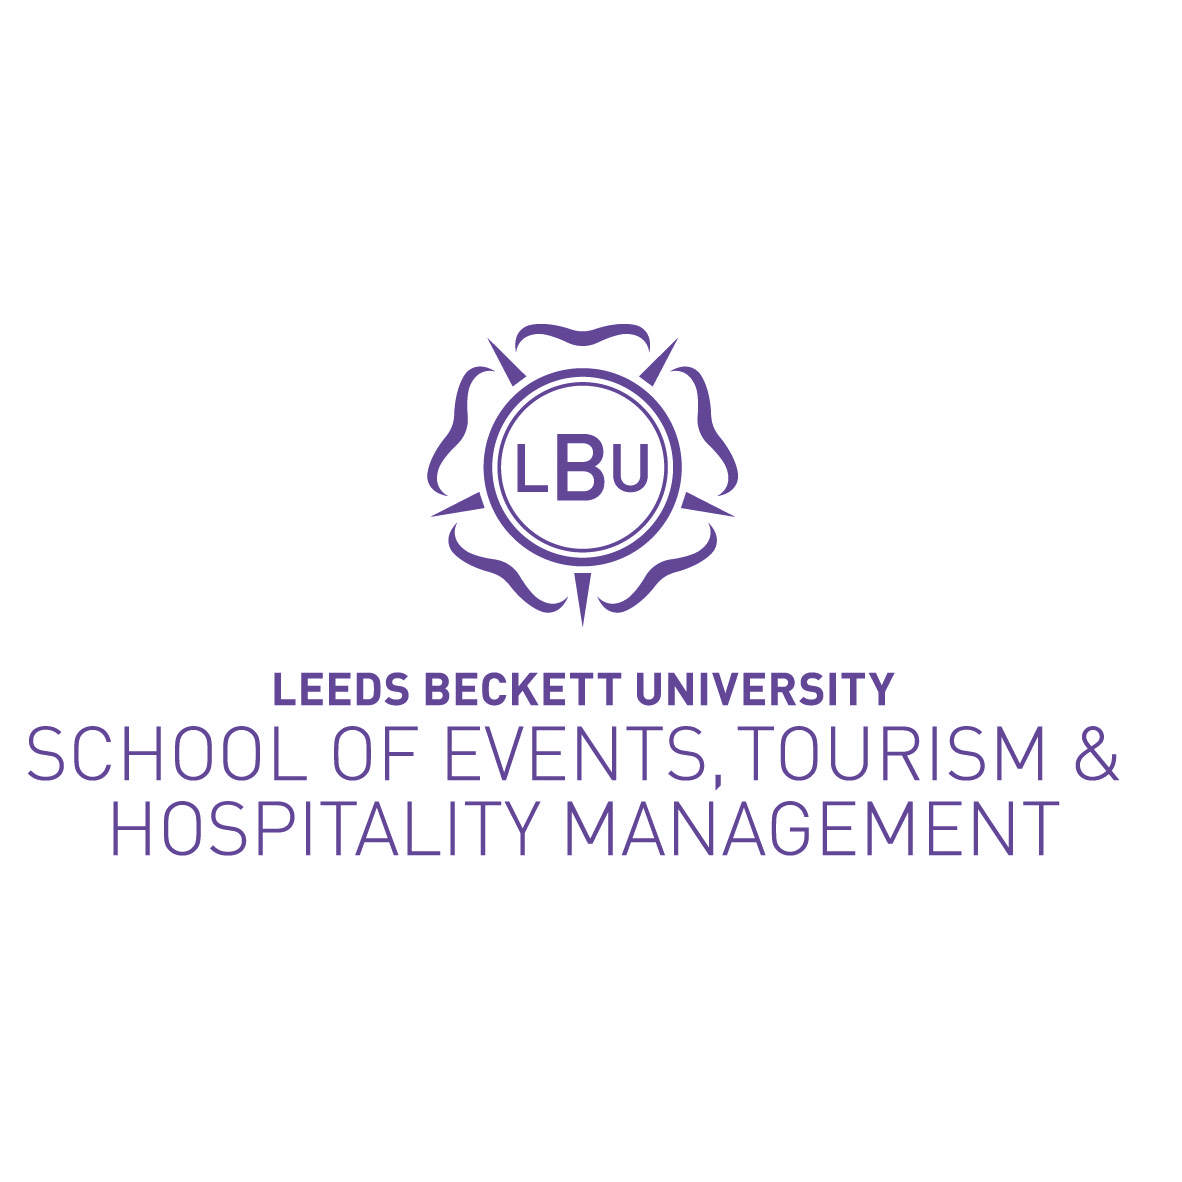 School of Events, Tourism & Hospitality Management